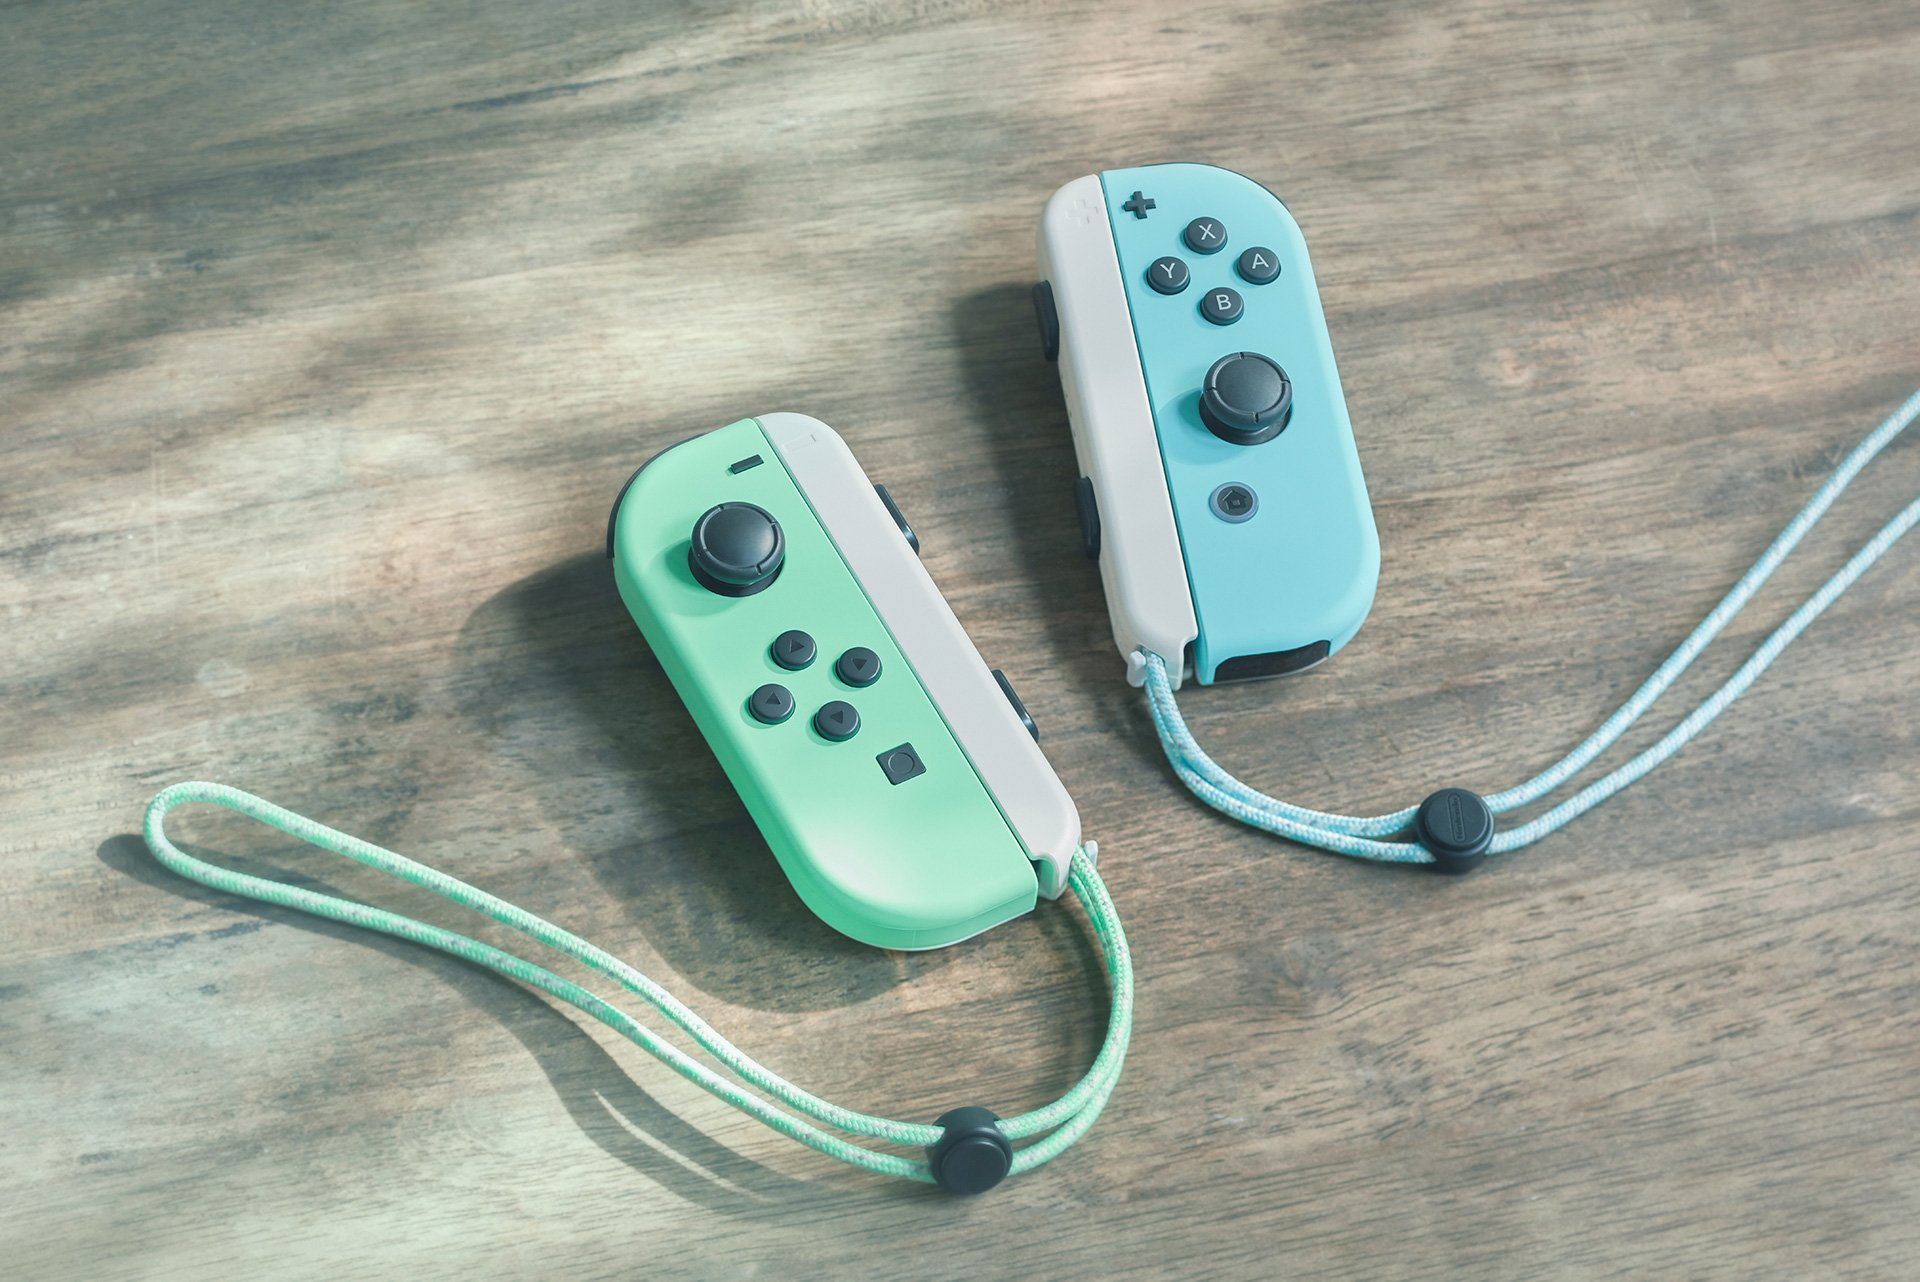 Pastel green and blue Joy-Con controllers.